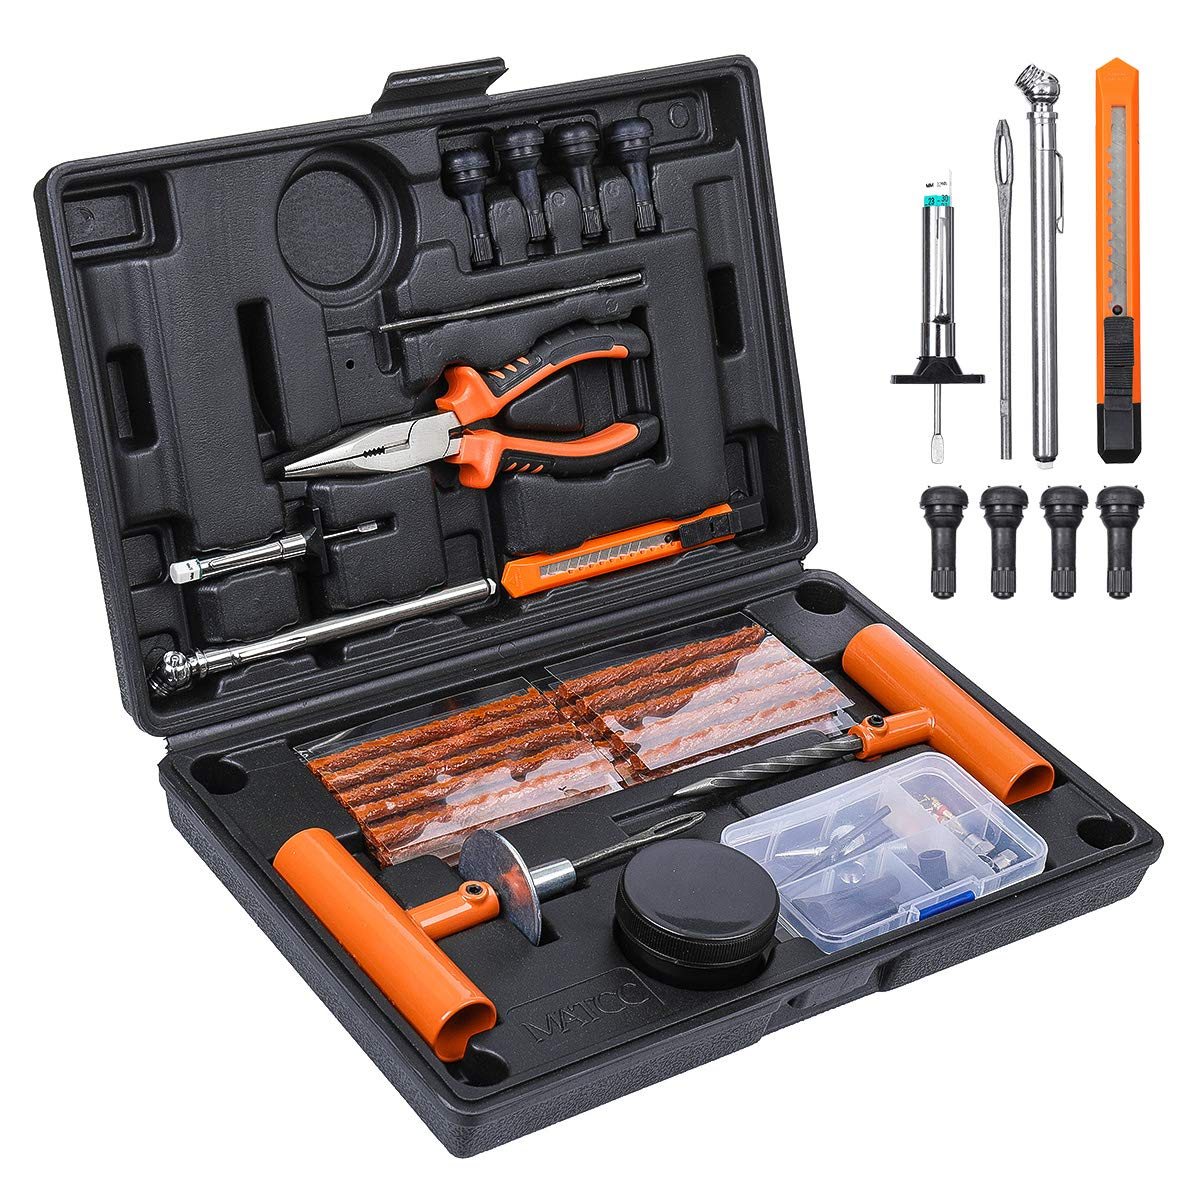 Details about  / Tire Repair Kit DIY Flat Tire Repair Car Truck Motorcycle Home Plug Patch 57pc